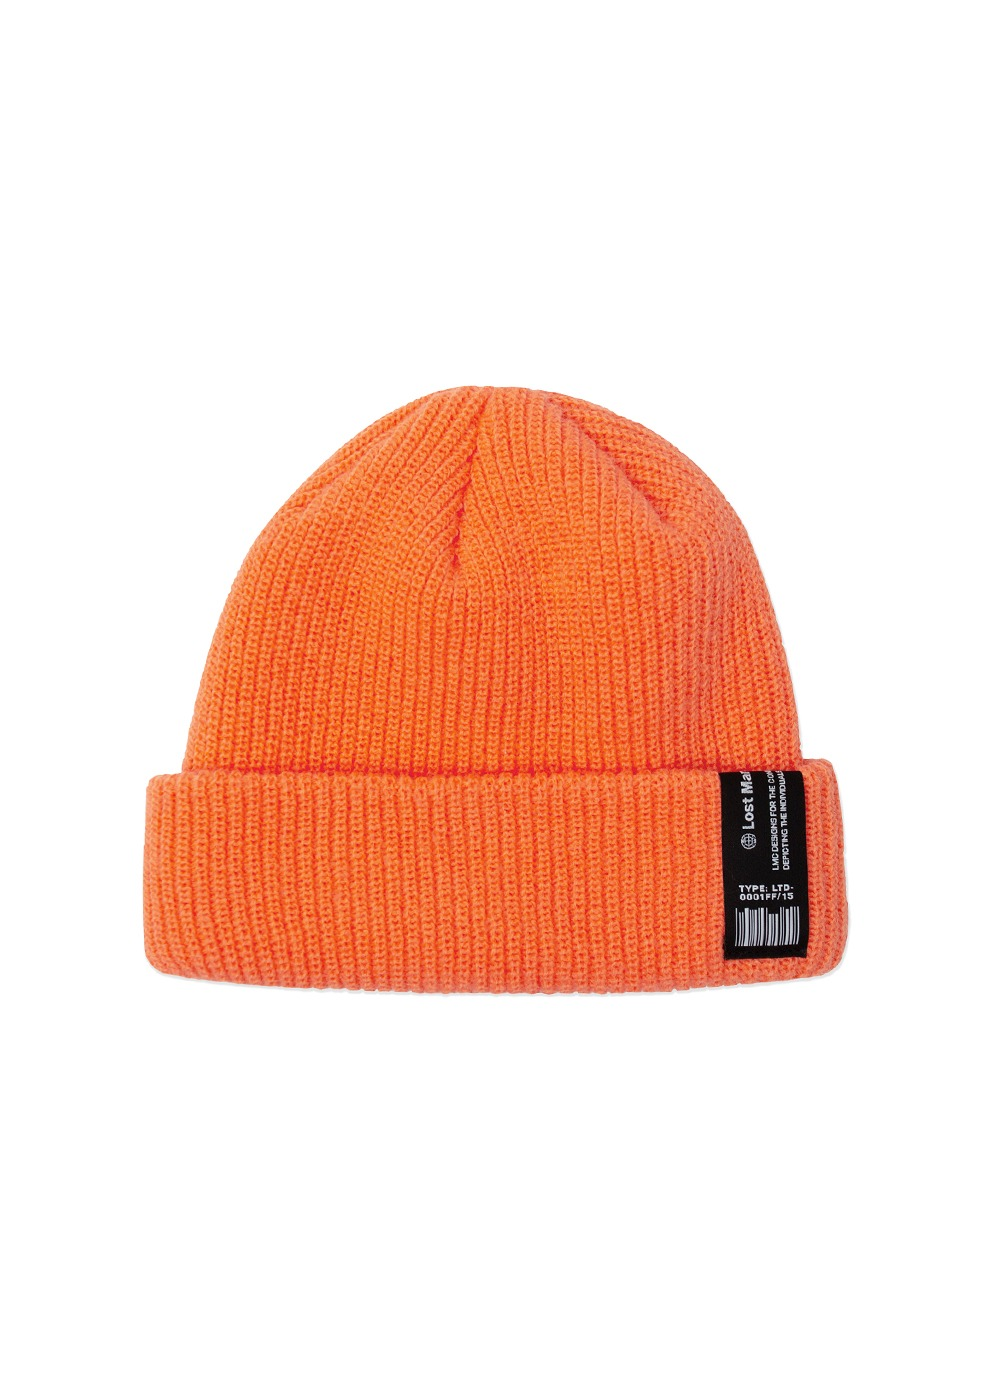 LMC LABEL SHORT BEANIE orange